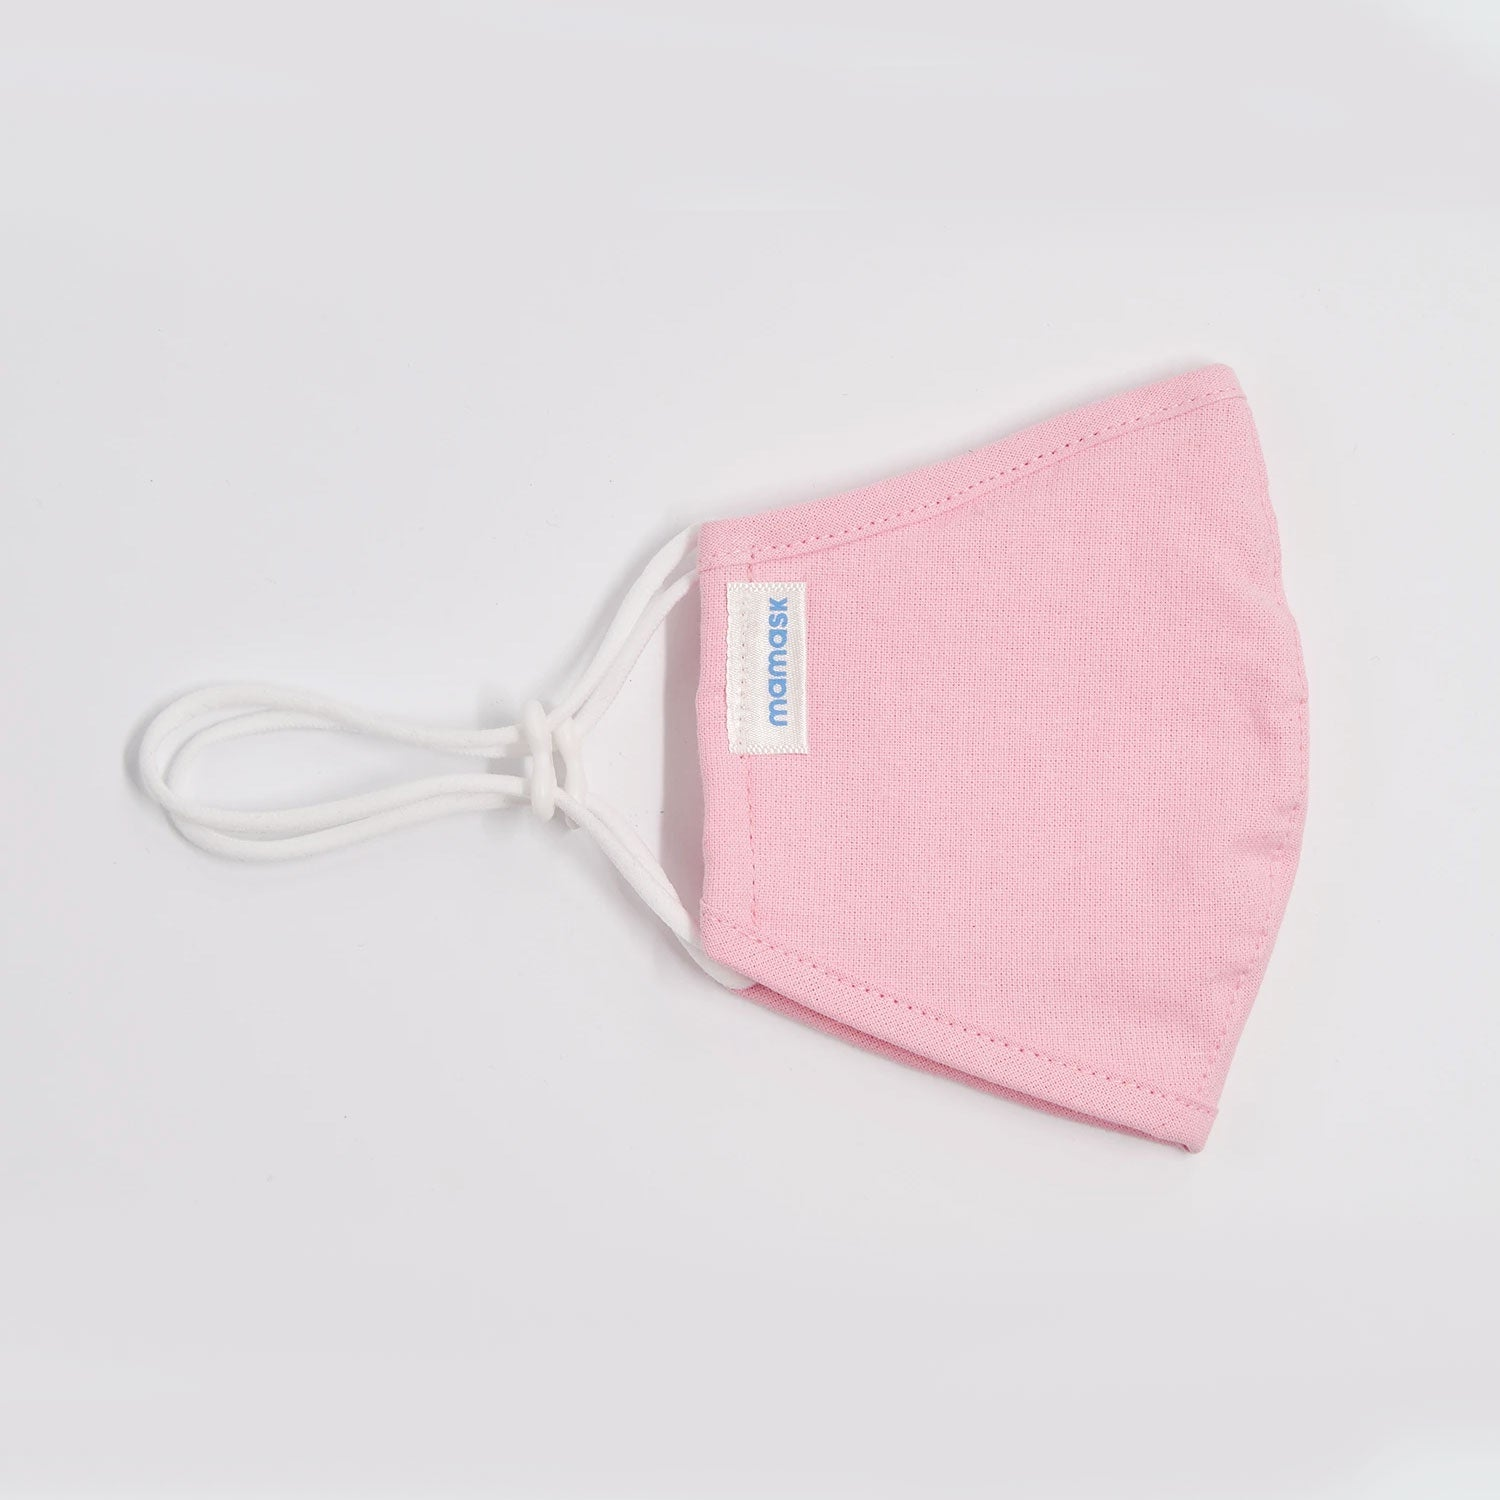 mamask Lightweight Face Mask in Light Pink